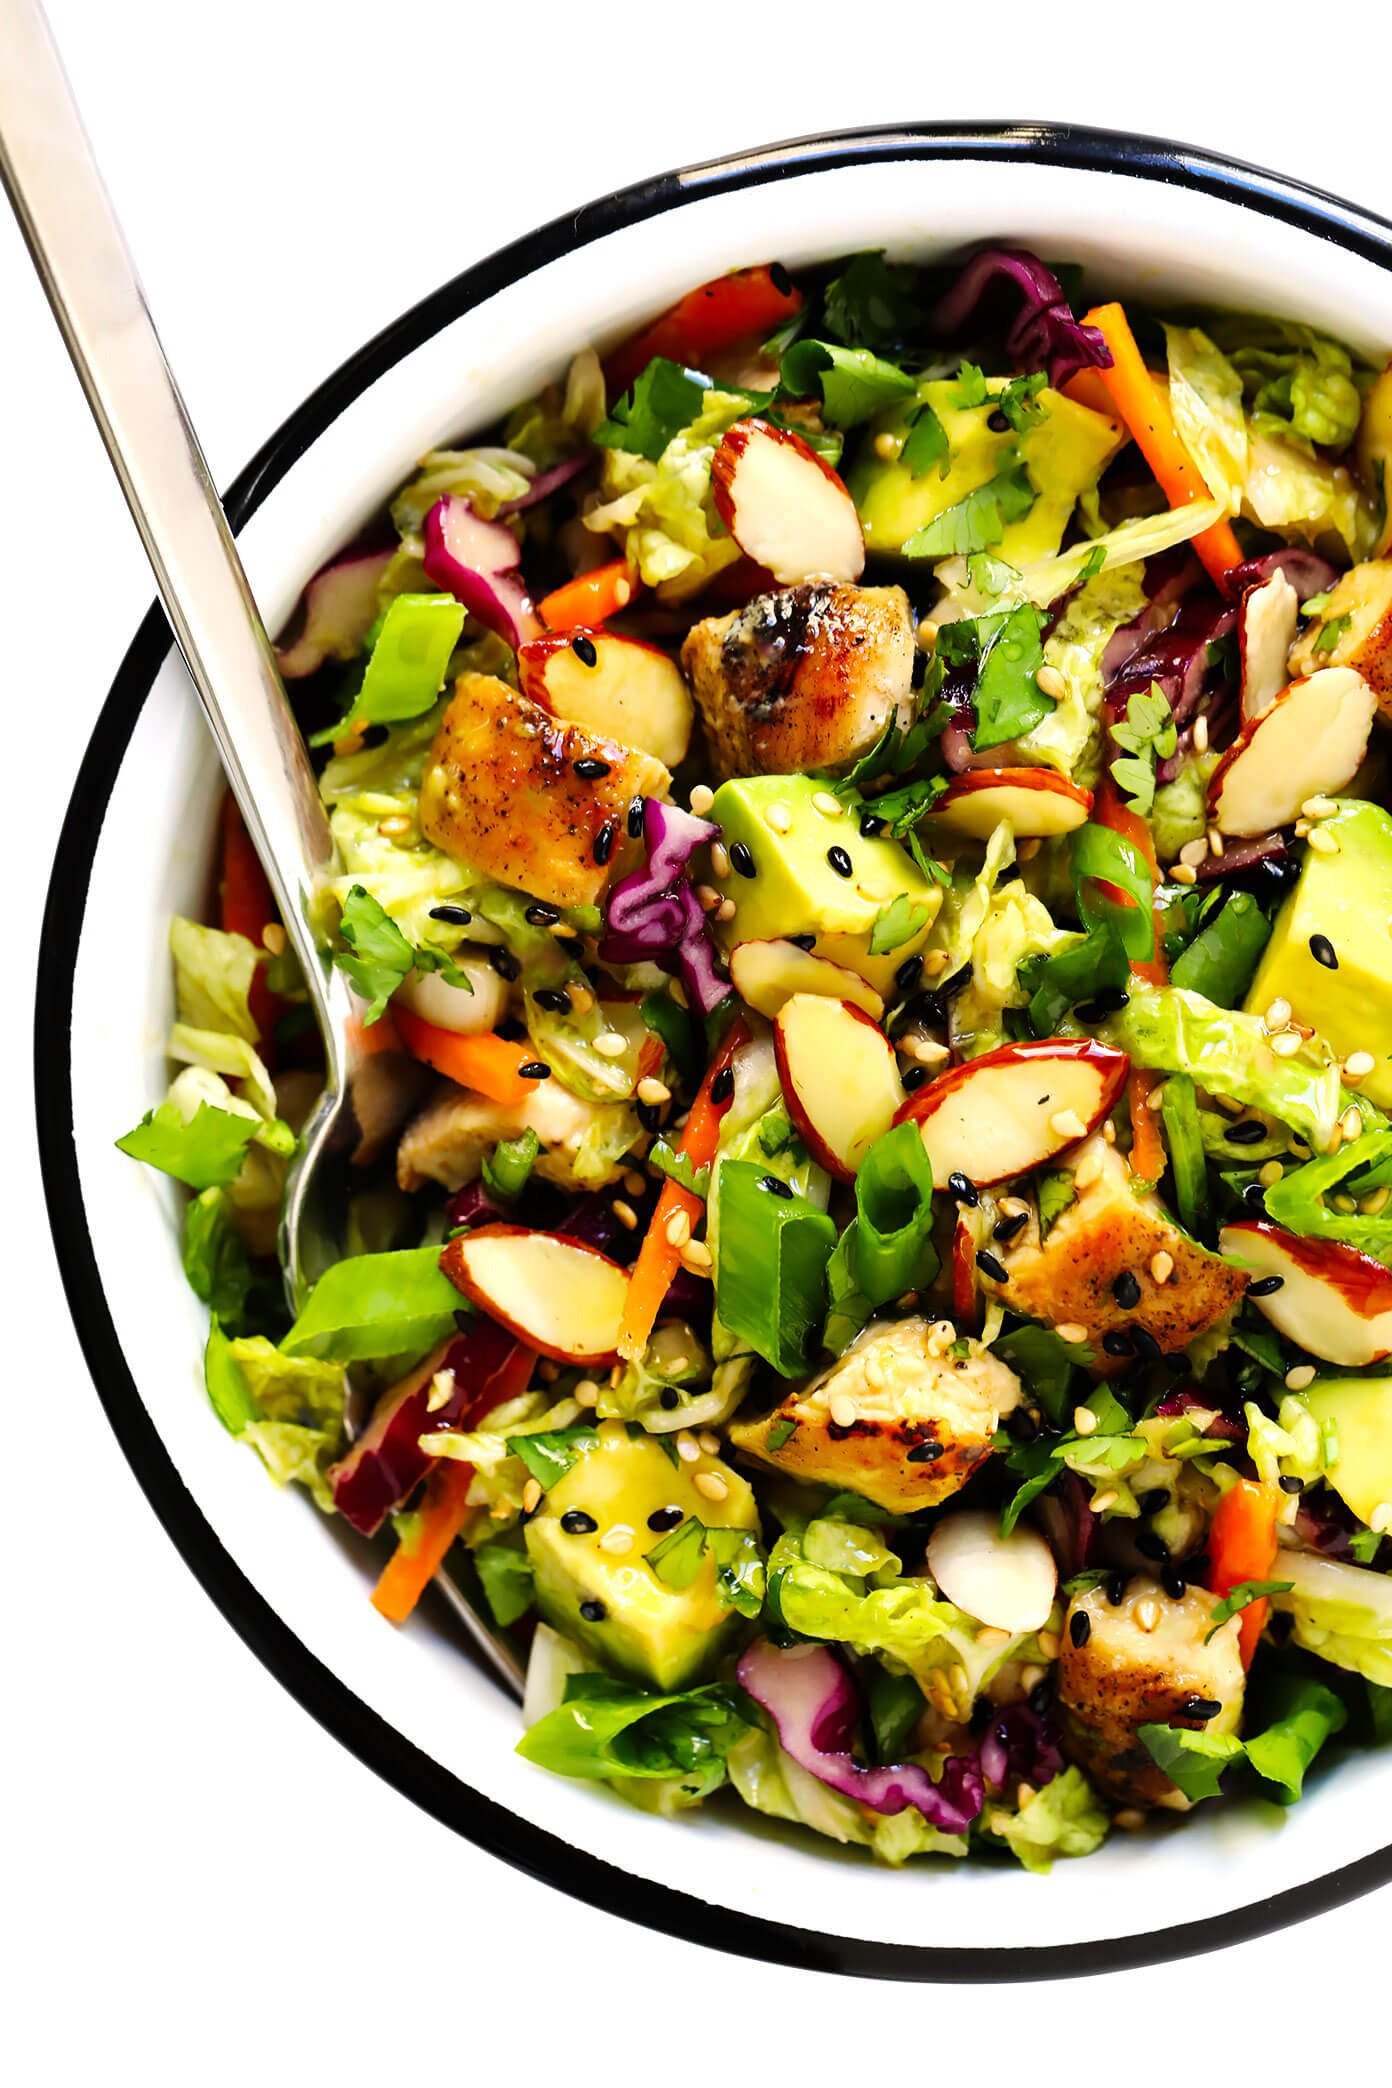 Green Salad with Chicken, Avocado and Sesame Vinaigrette